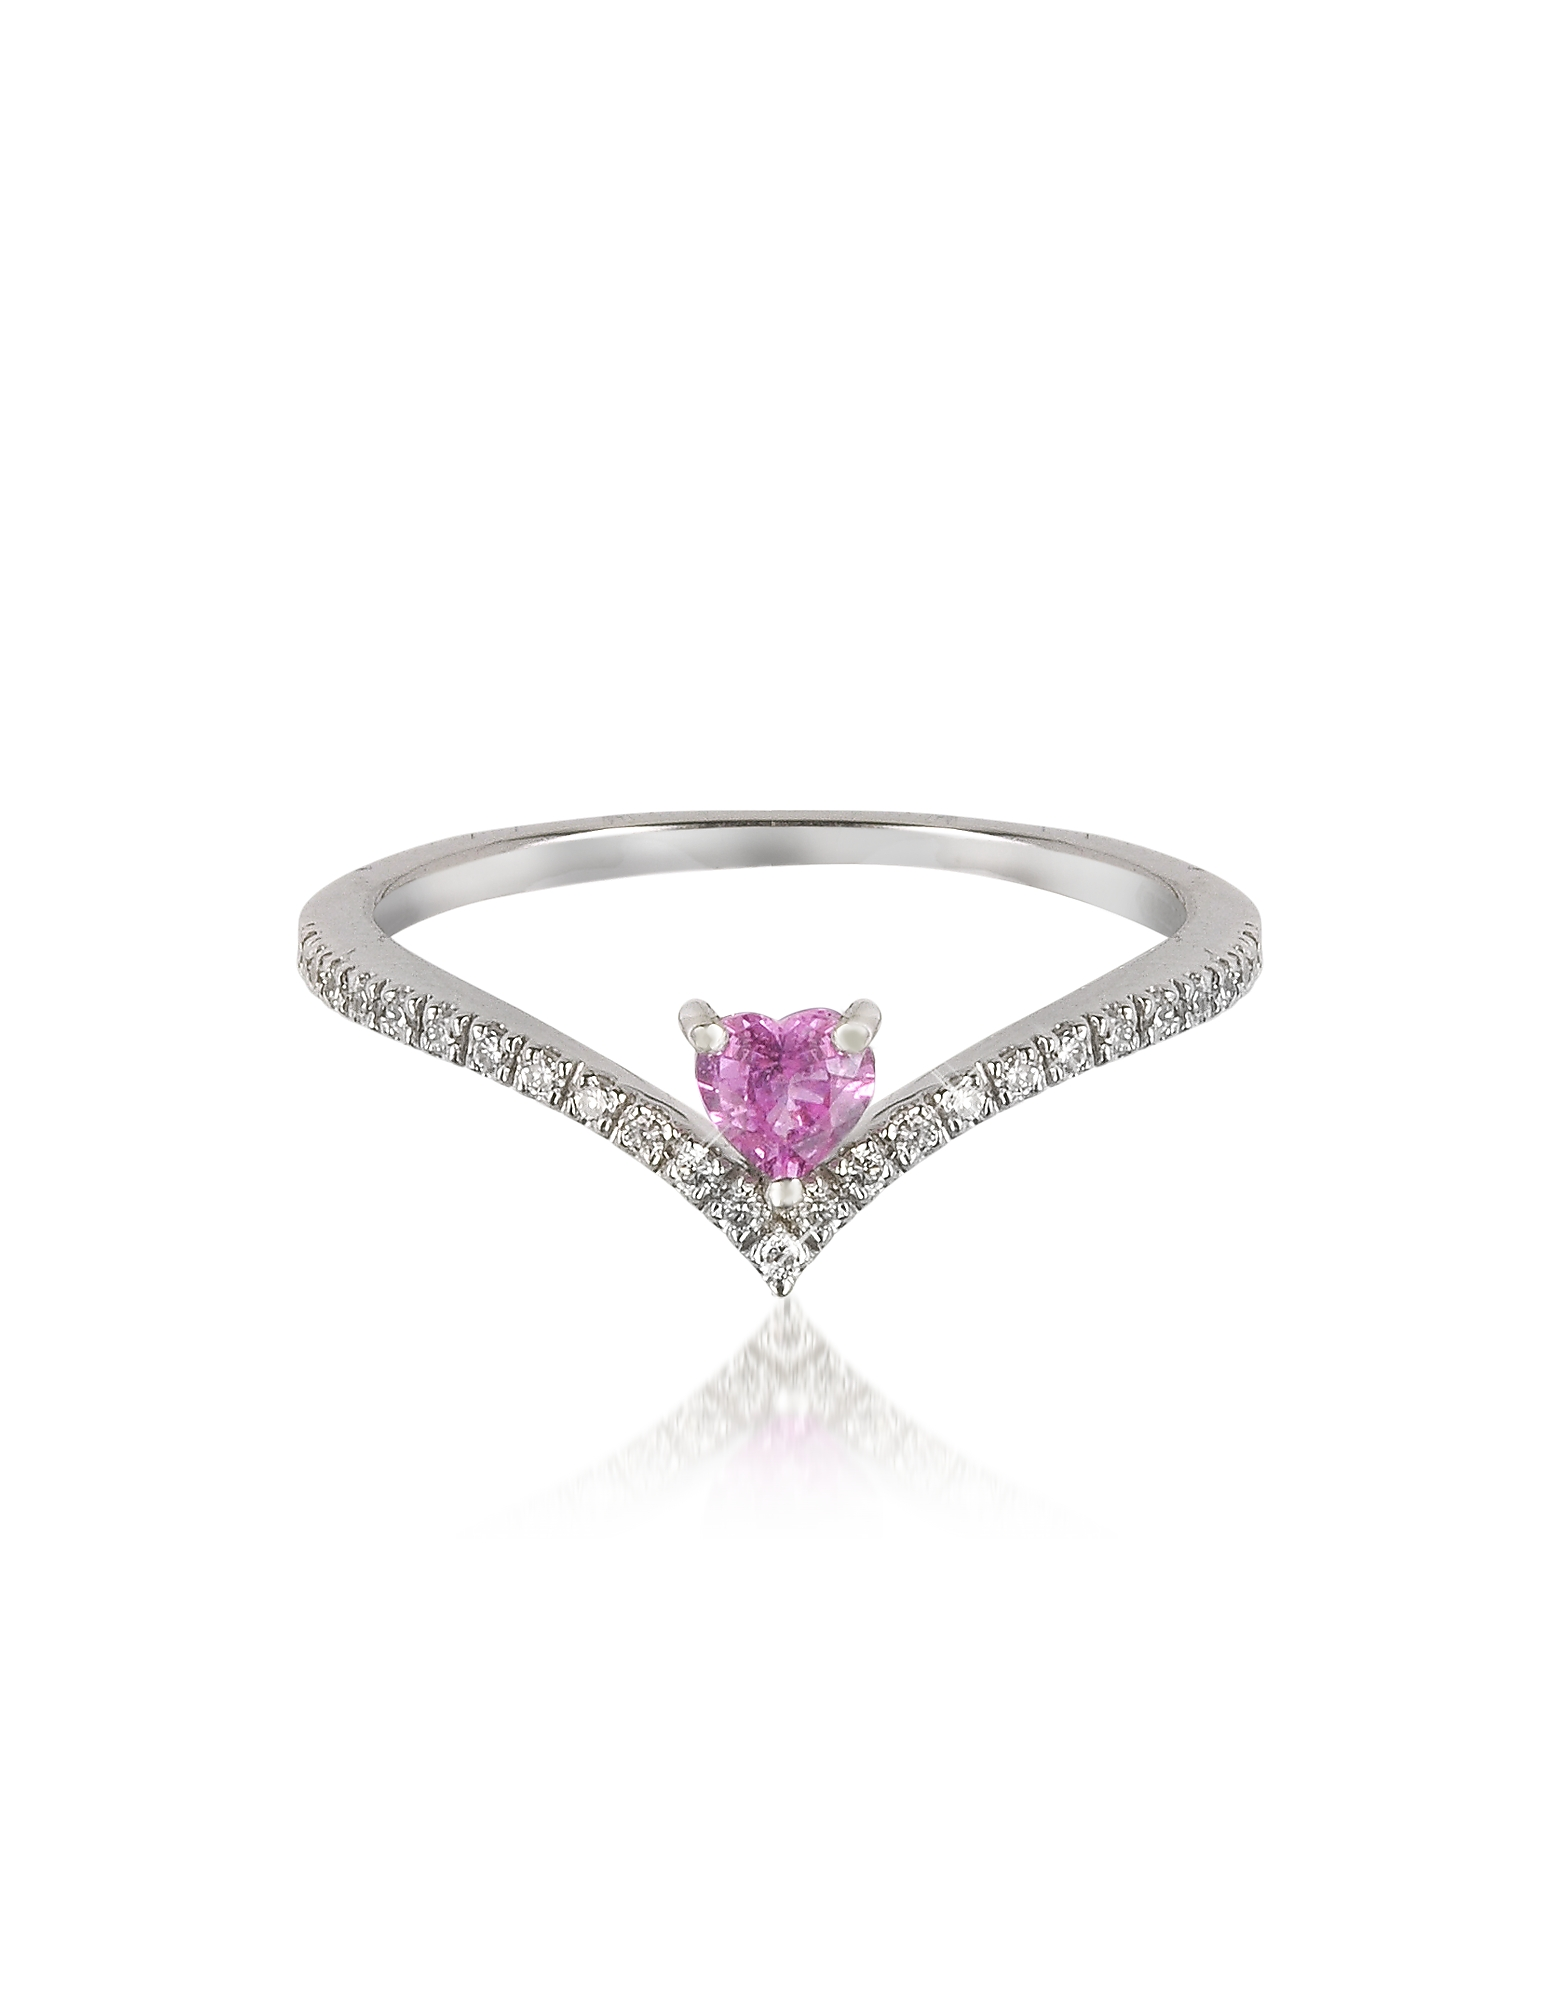 Forzieri Rings, V-Shaped Diamonds Band Ring with Enclosed Pink Natural Sapphire Heart